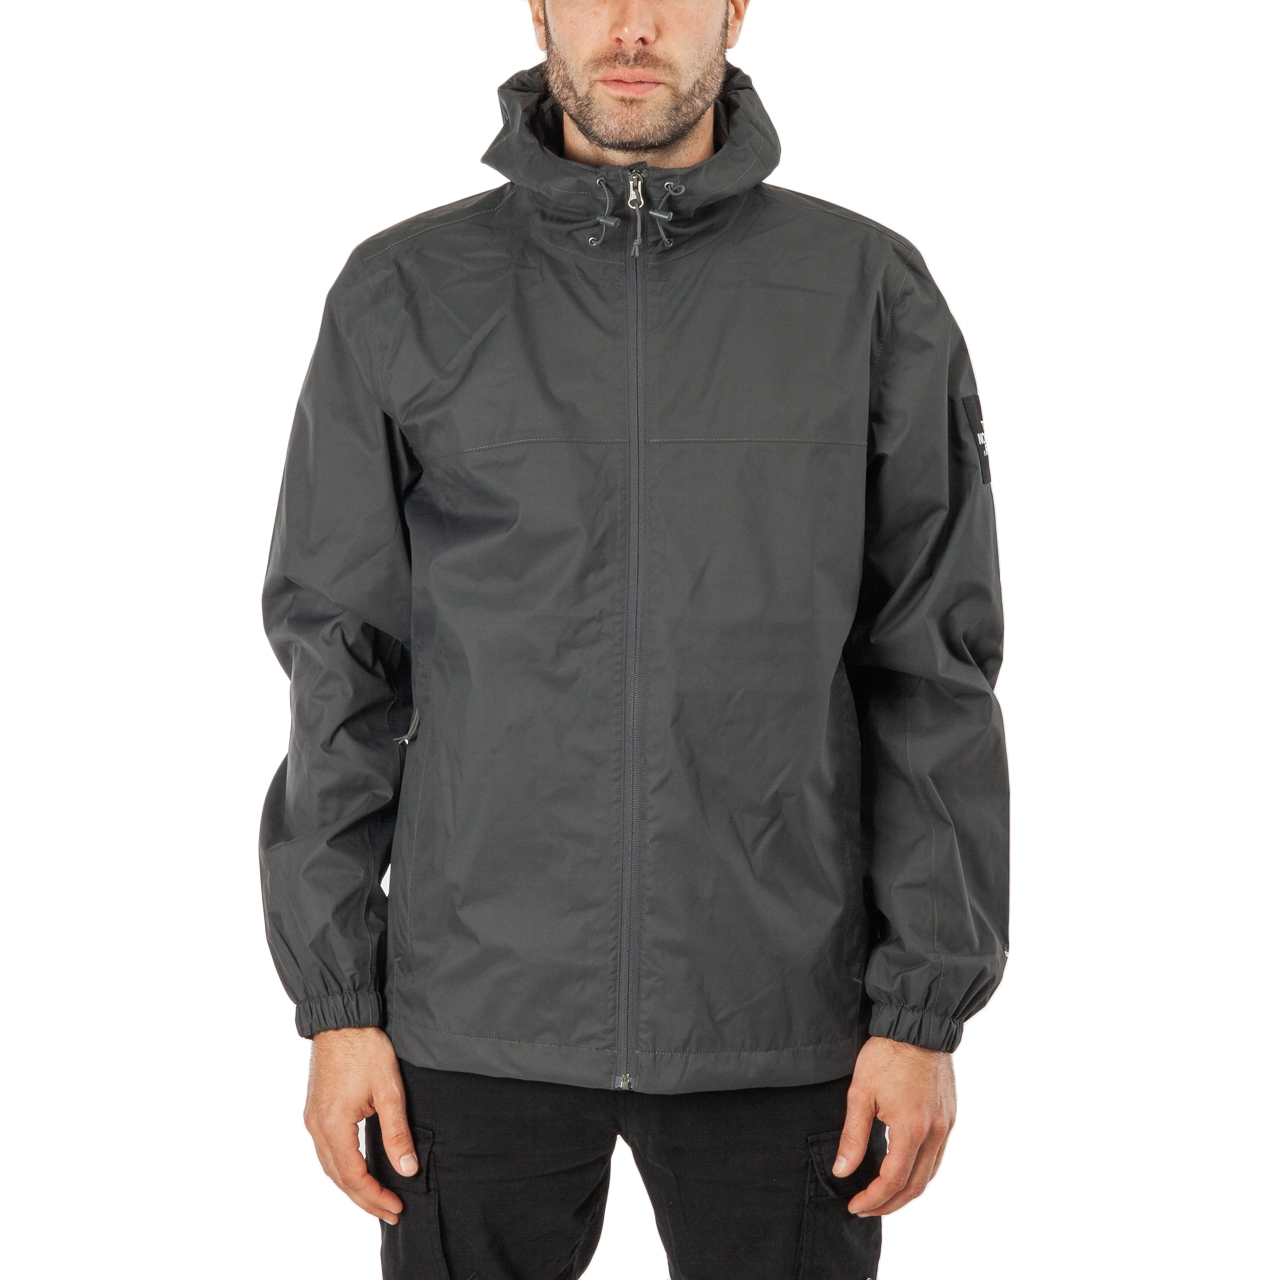 The North Face Mountain Q Jacket (Asphalt Grau)